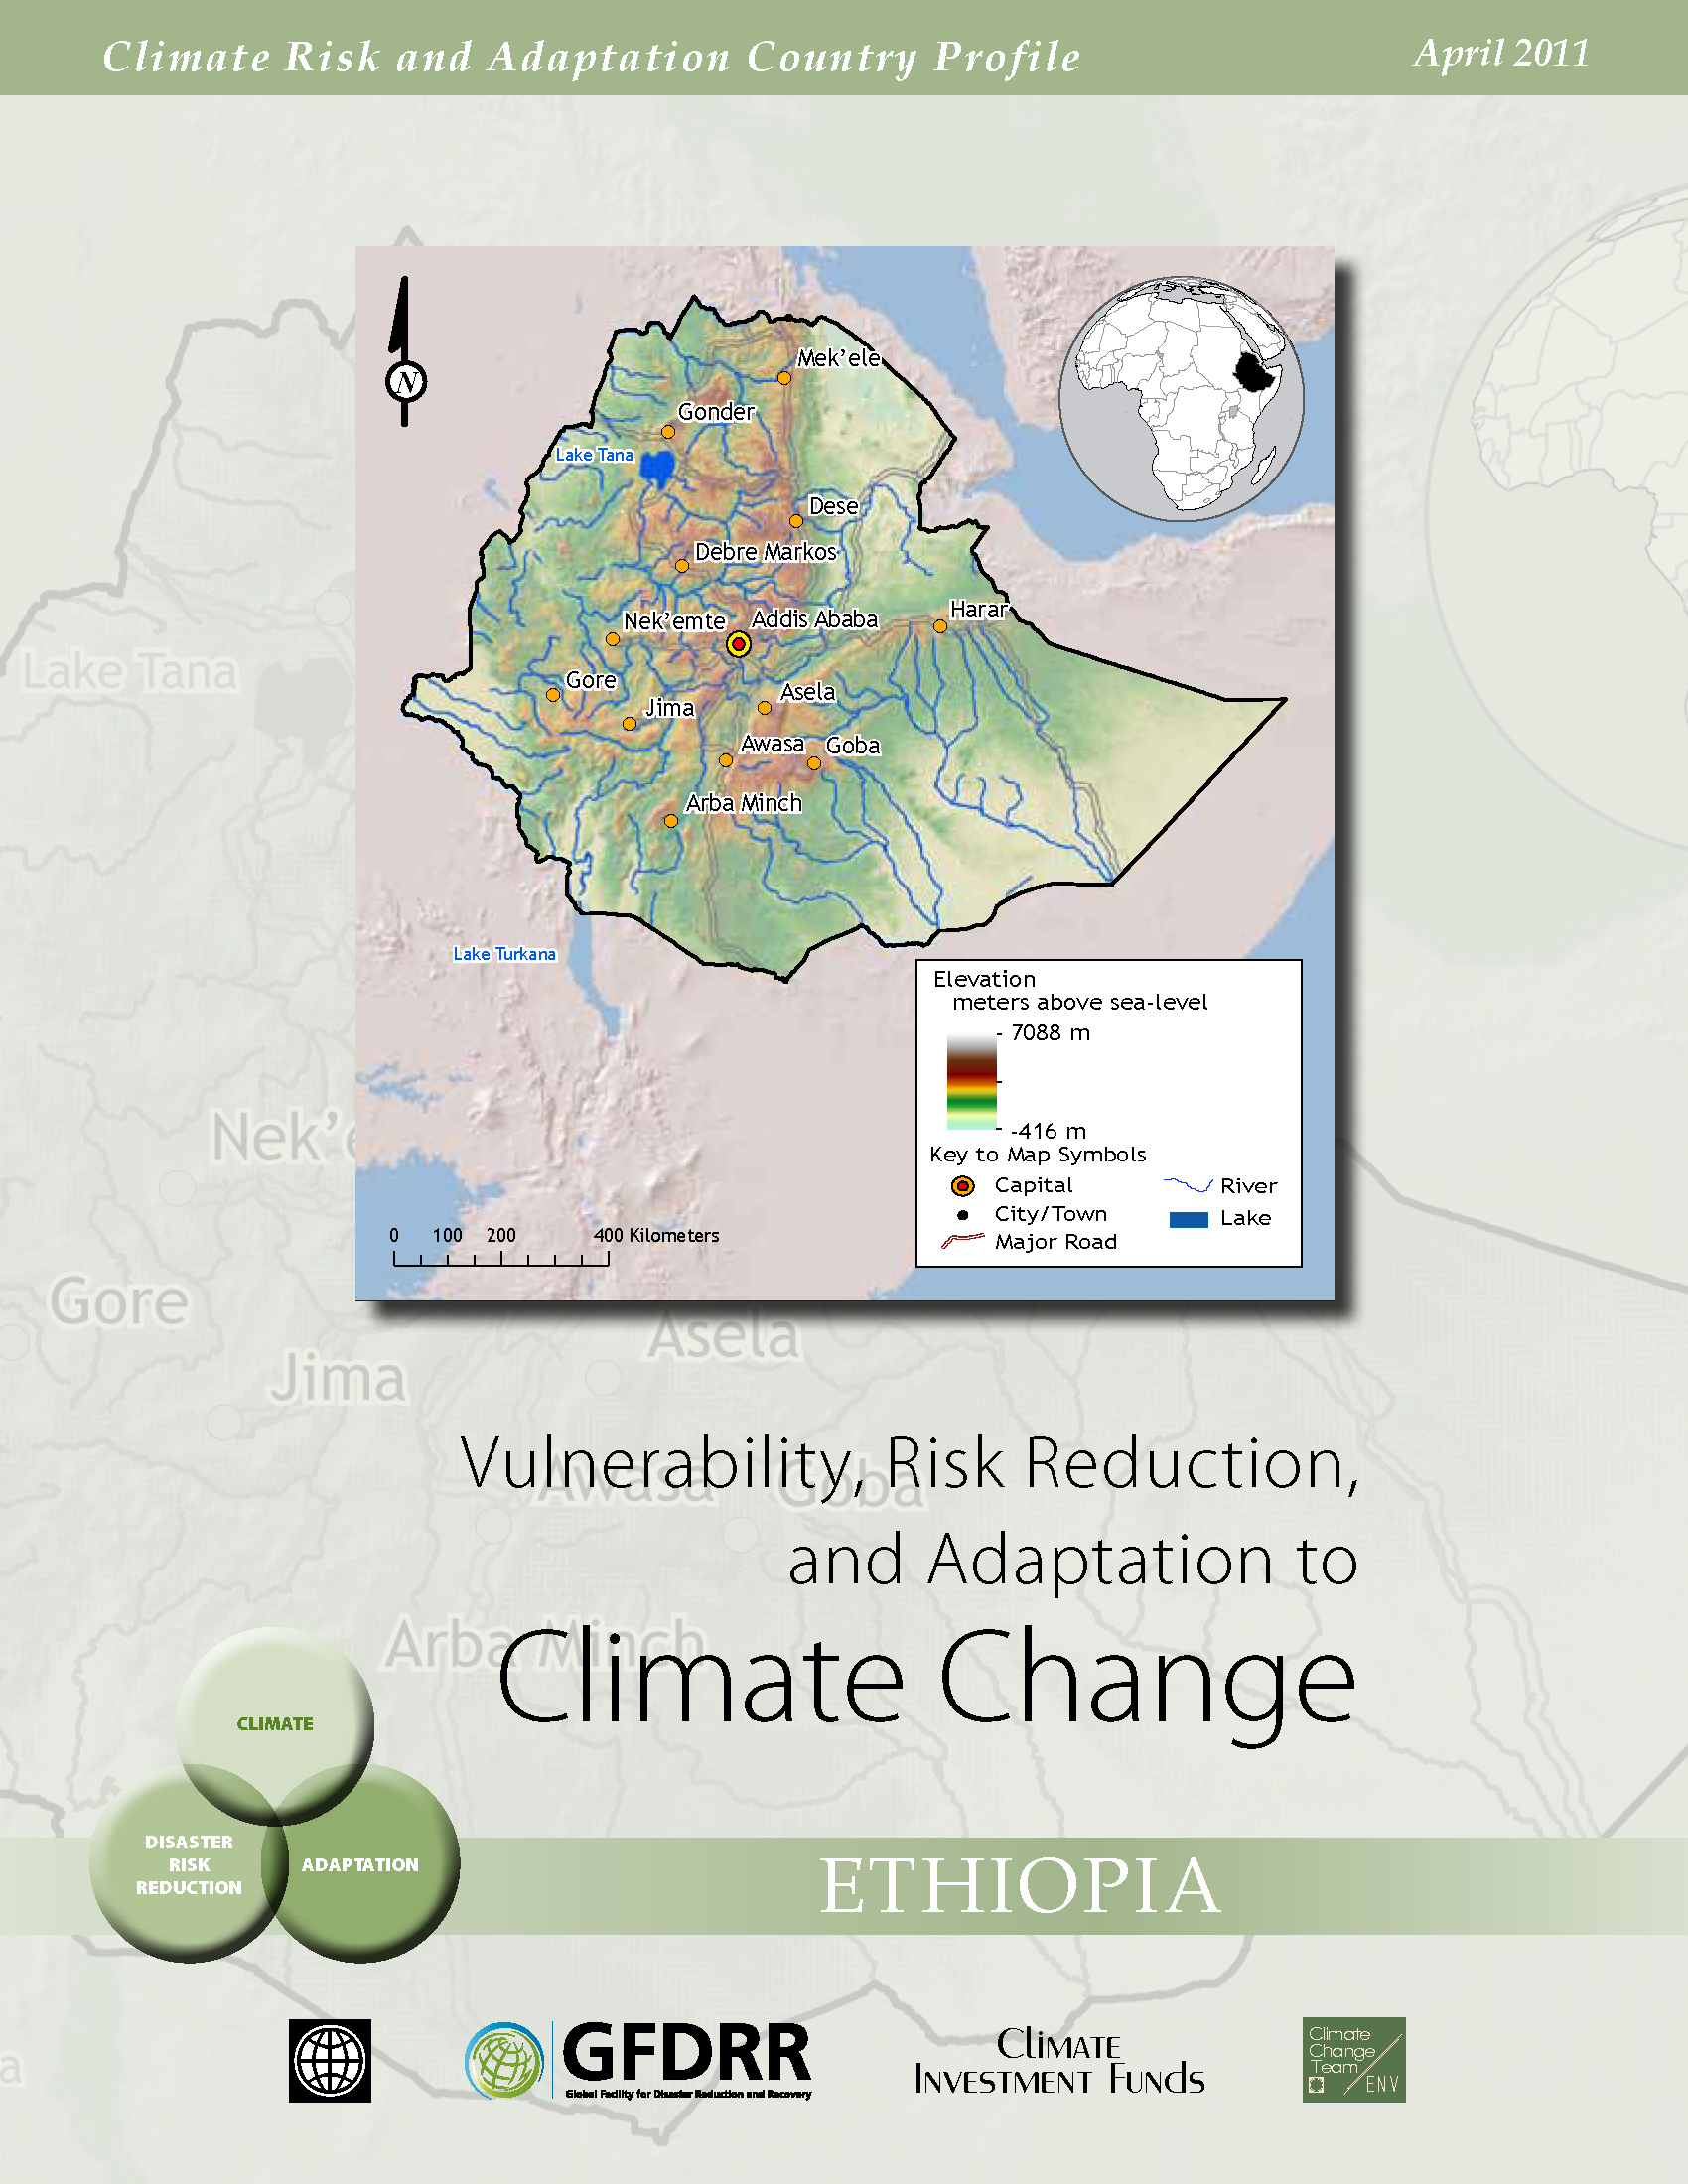 Climate Risk and Adaptation Country Profile: Ethiopia